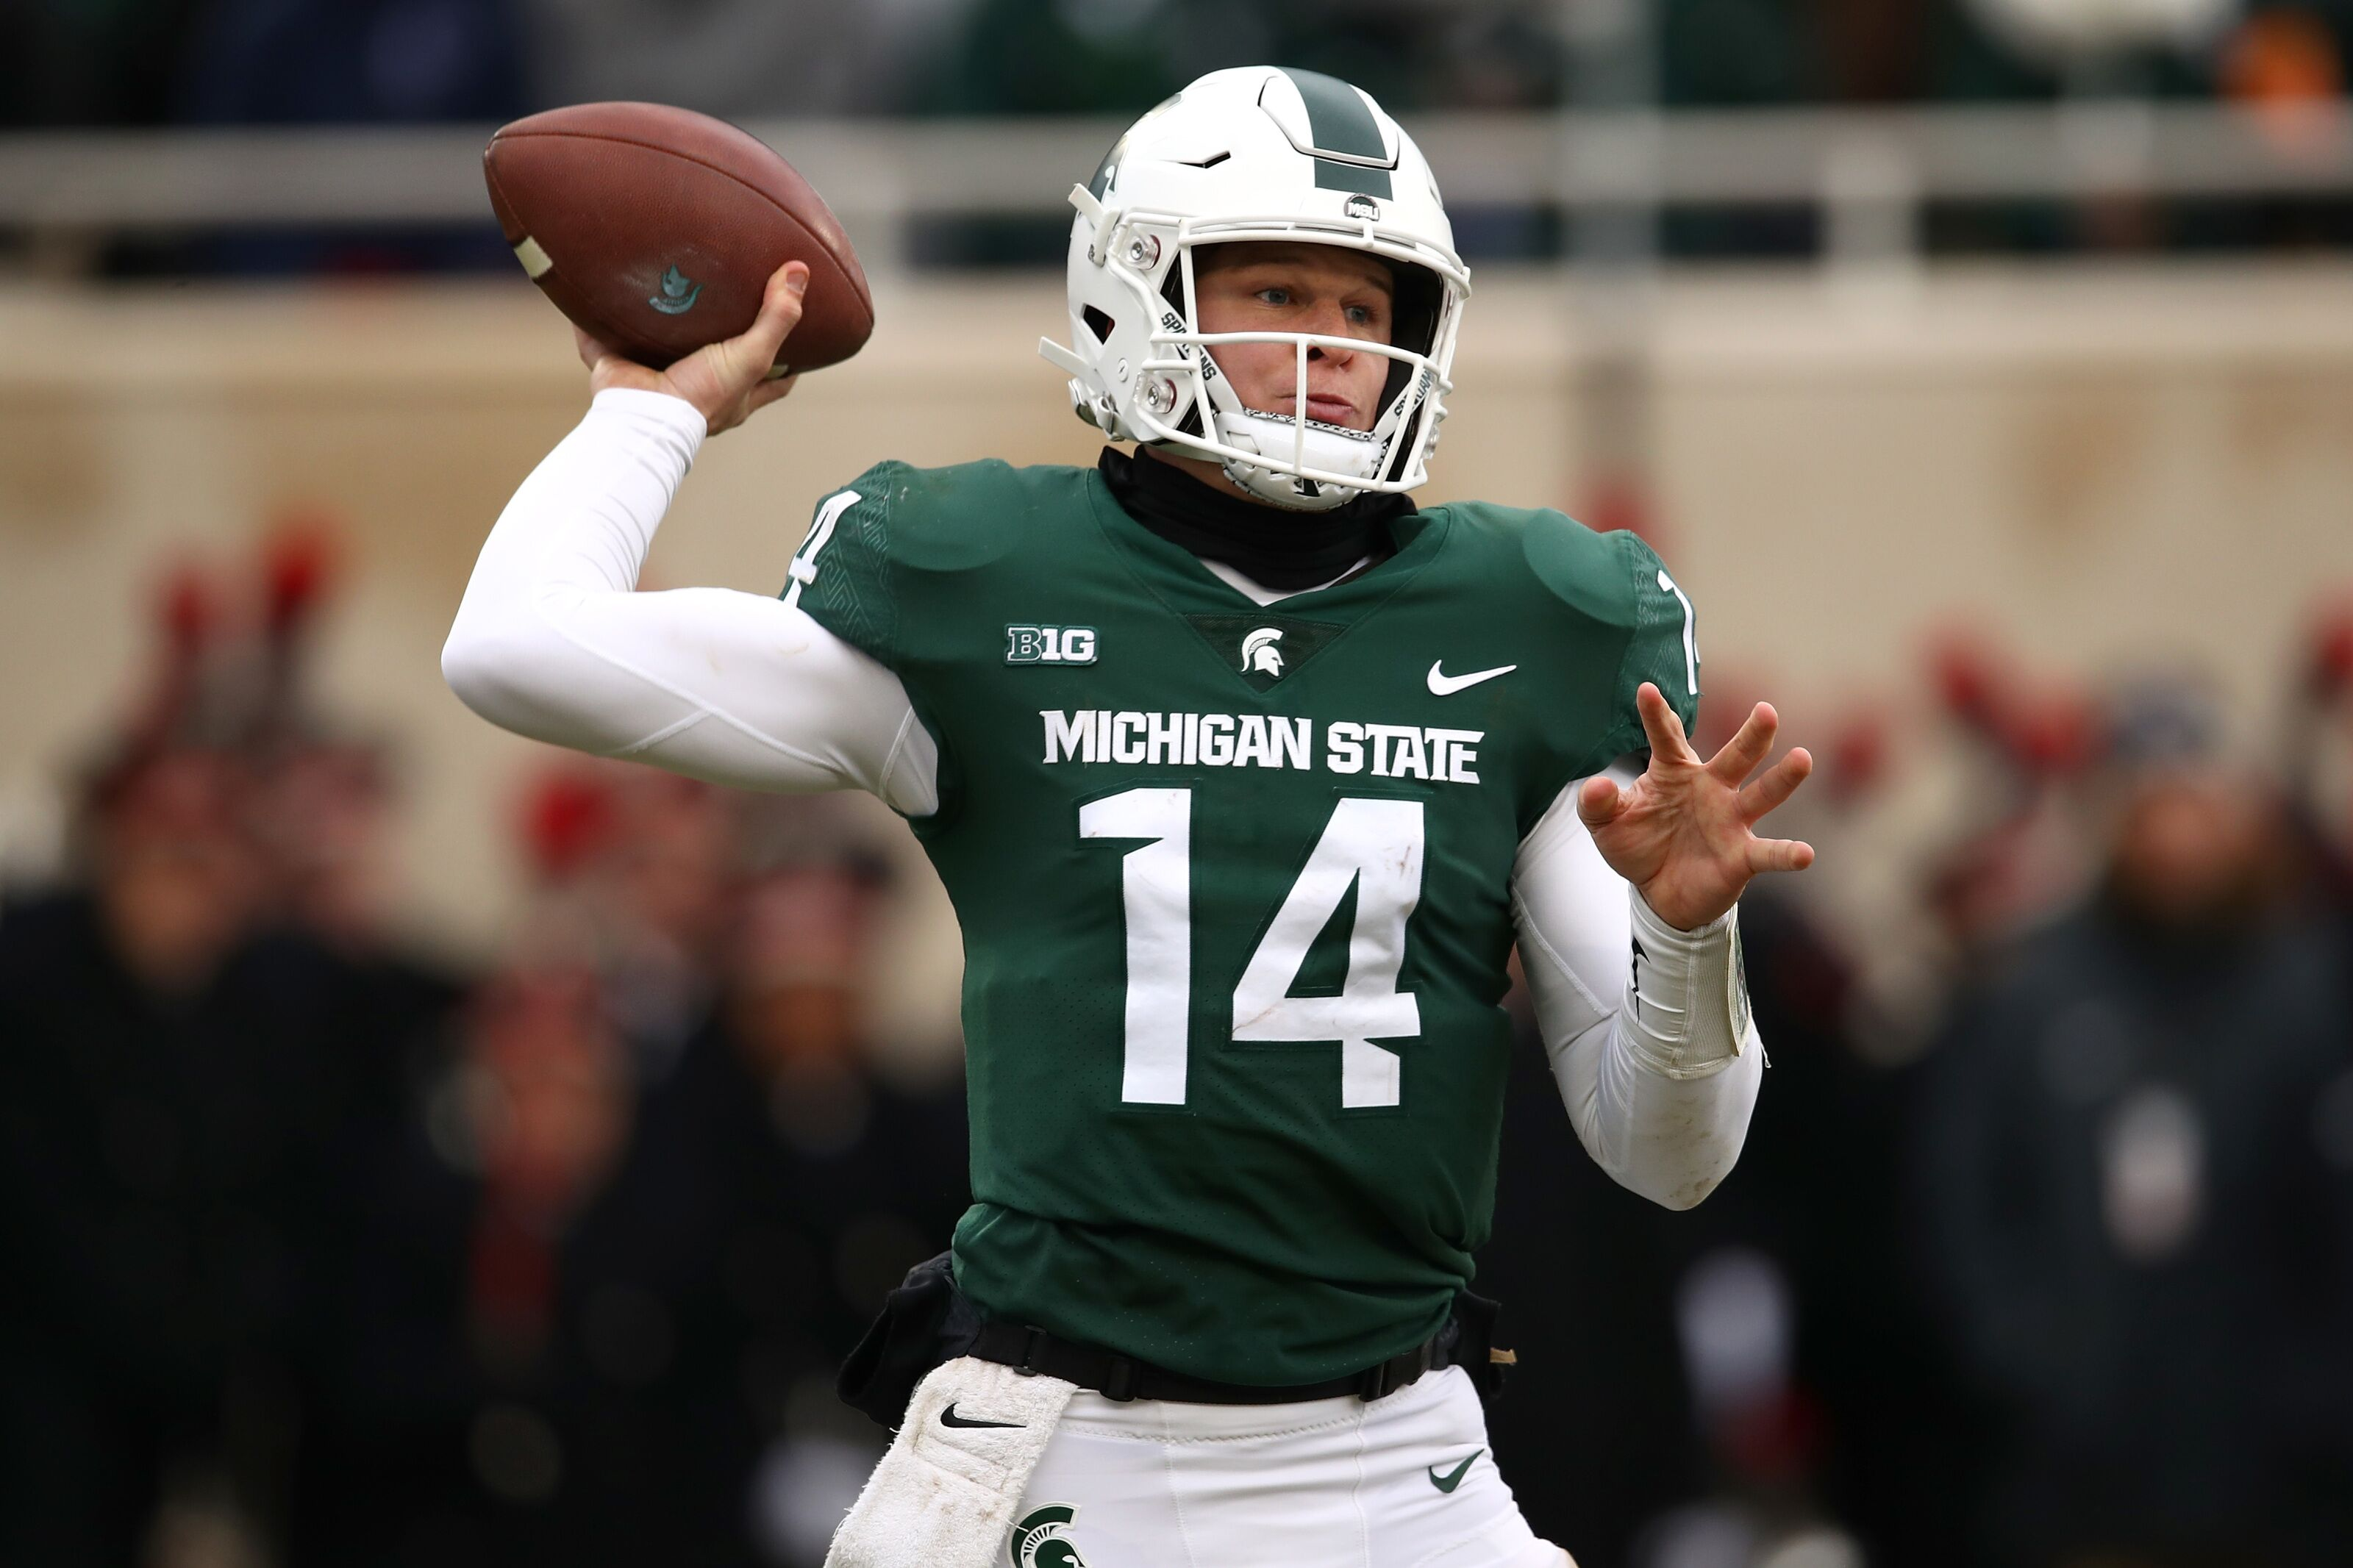 e2470f175 Michigan State football  Can Brian Lewerke contend for Big Ten s best QB